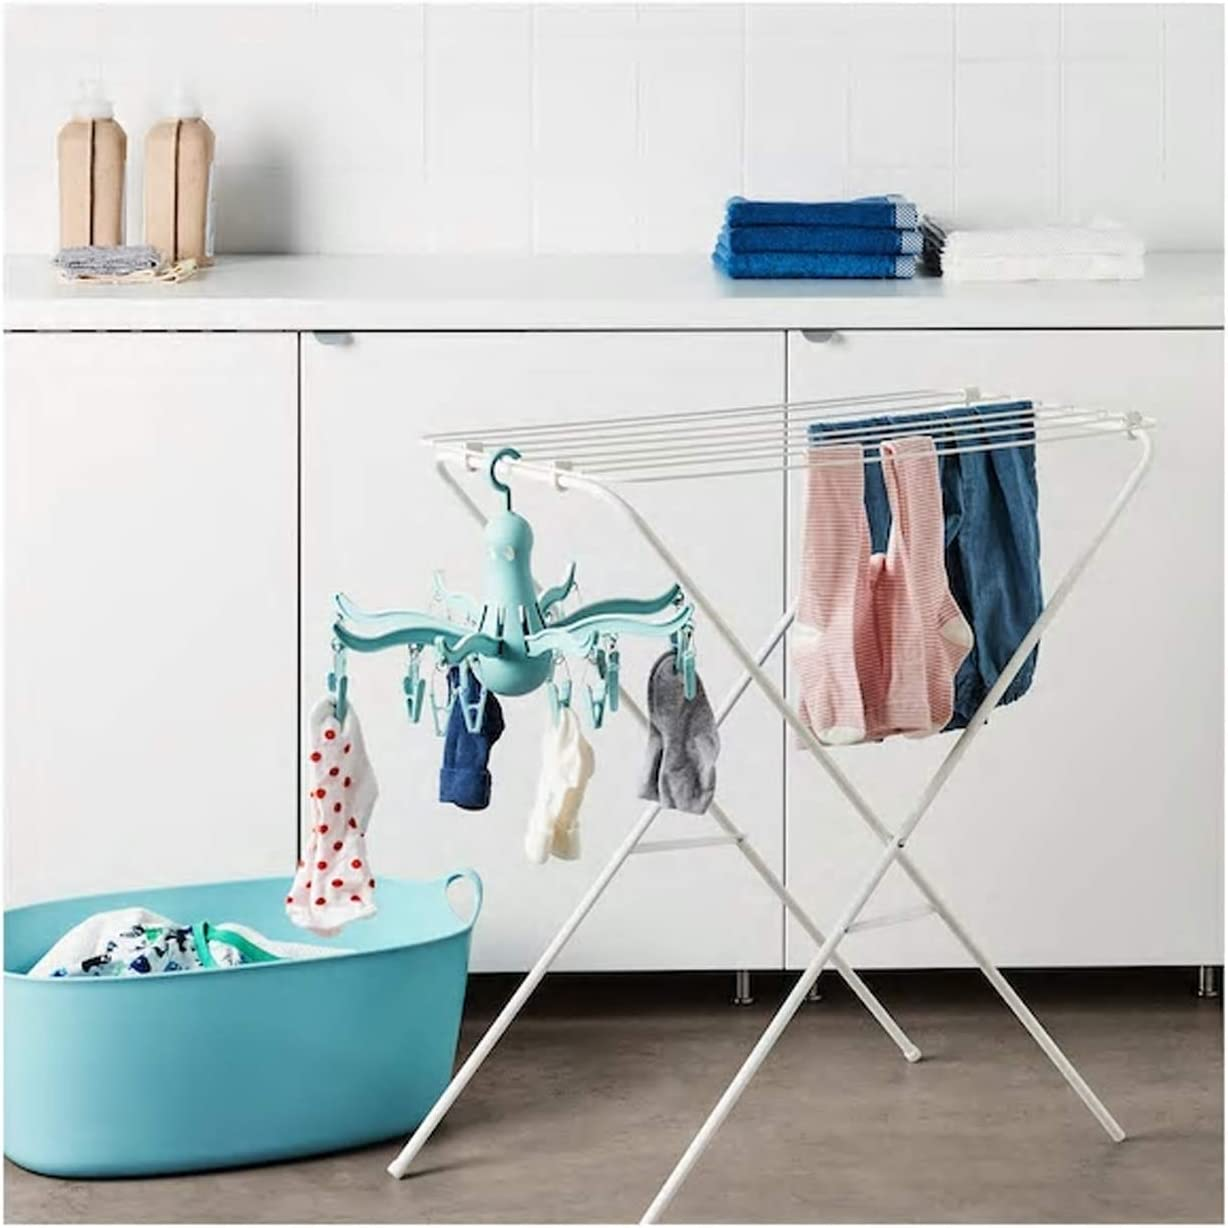 PRESSA Hanging dryer 16 clothes pegs turquoise